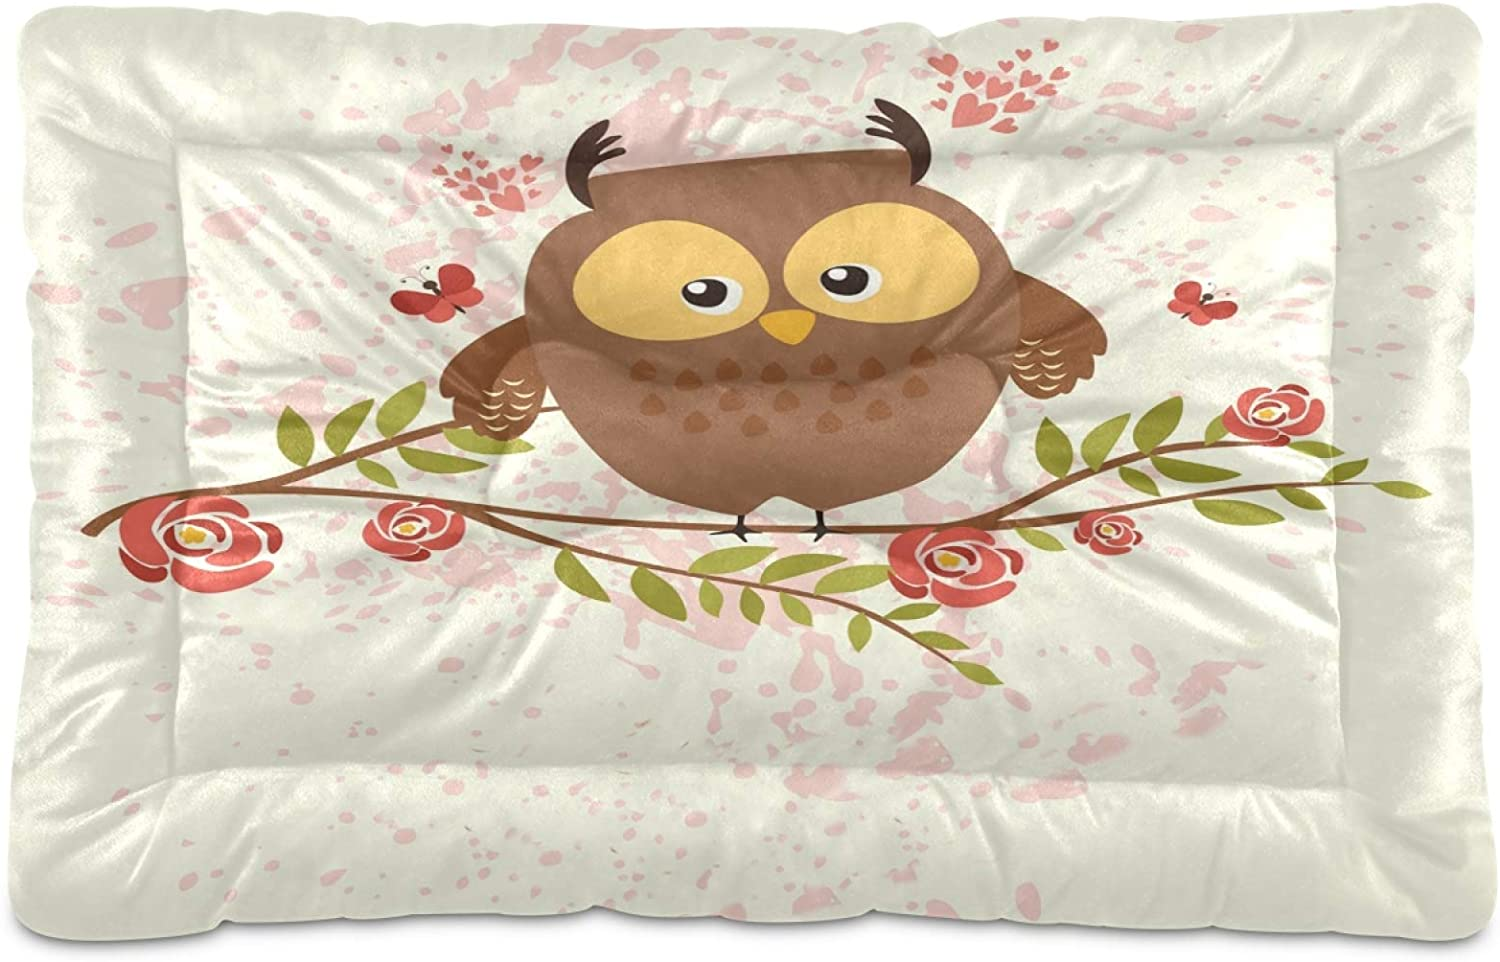 Nander Cute Max 76% OFF Max 45% OFF Owl Flower1 Comfortable Dog Crate Machi Pad Mat Beds